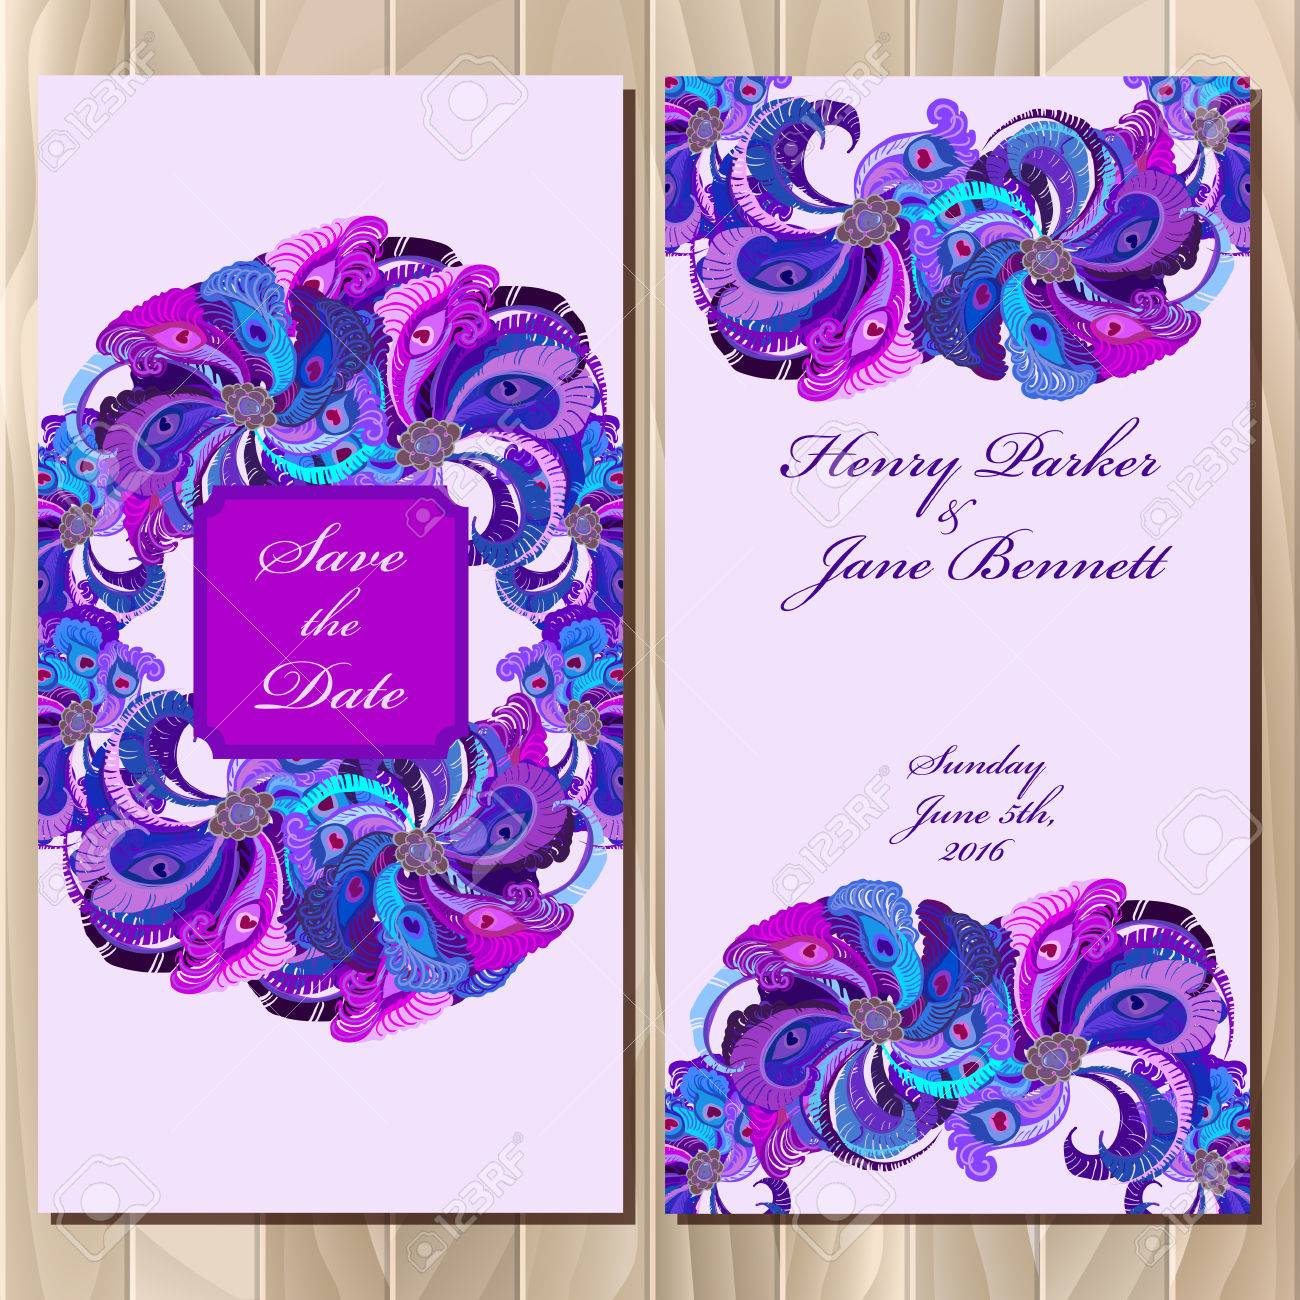 Wedding Invitation Card With Peacock Feathers Printable Backgrounds